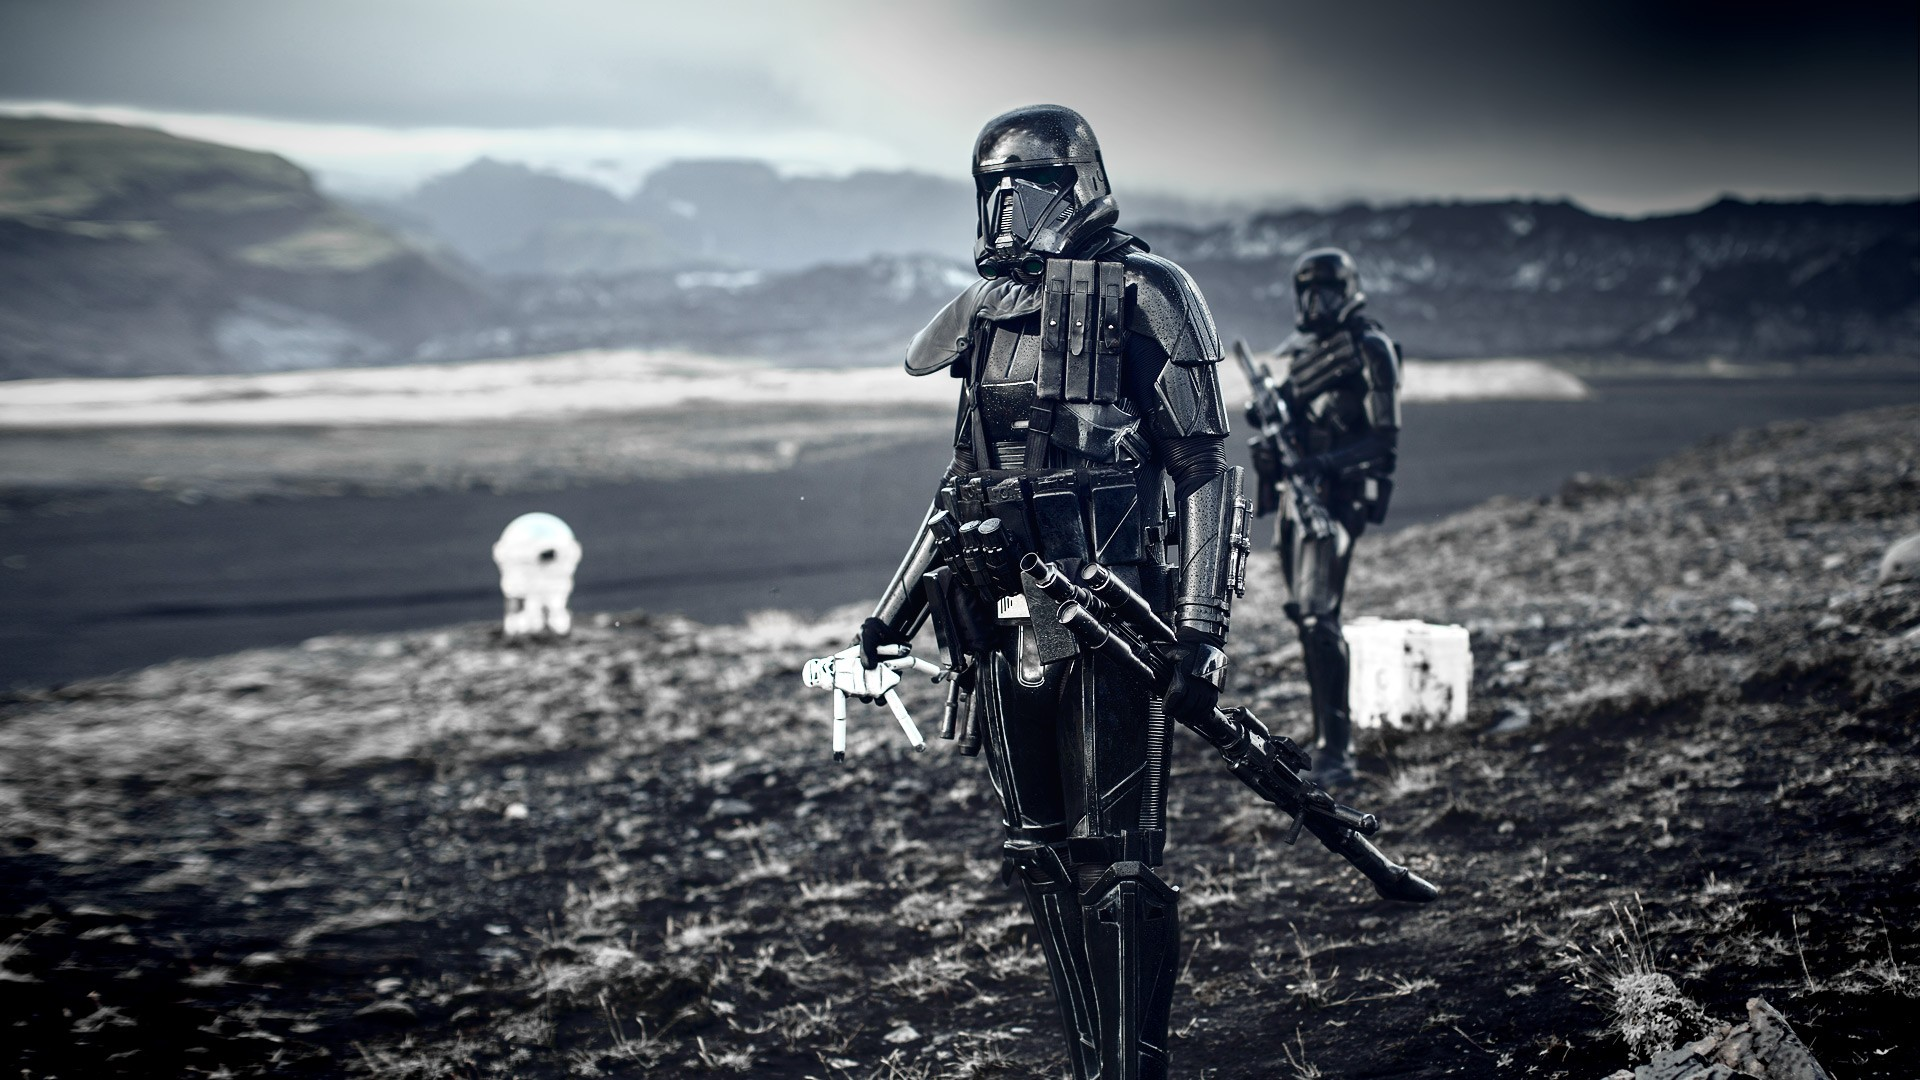 rogue one wallpaper ·① download free beautiful hd wallpapers for